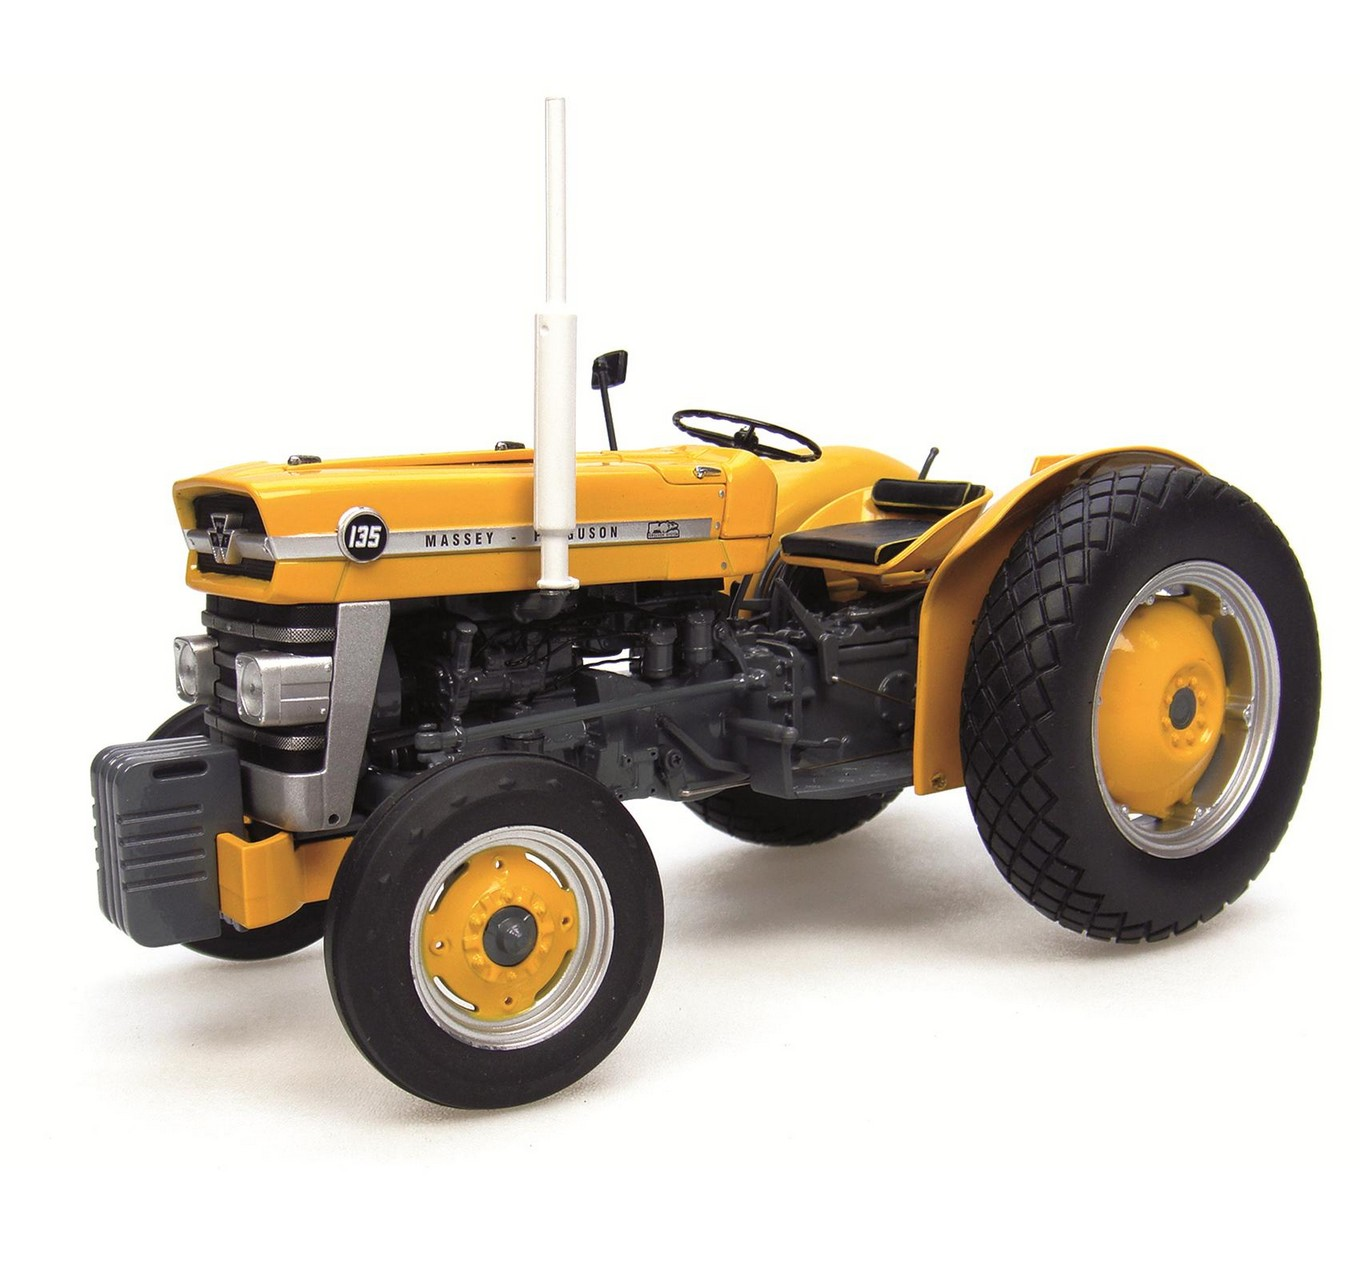 Universal Hobbies Massey Ferguson 135 Industrial Model